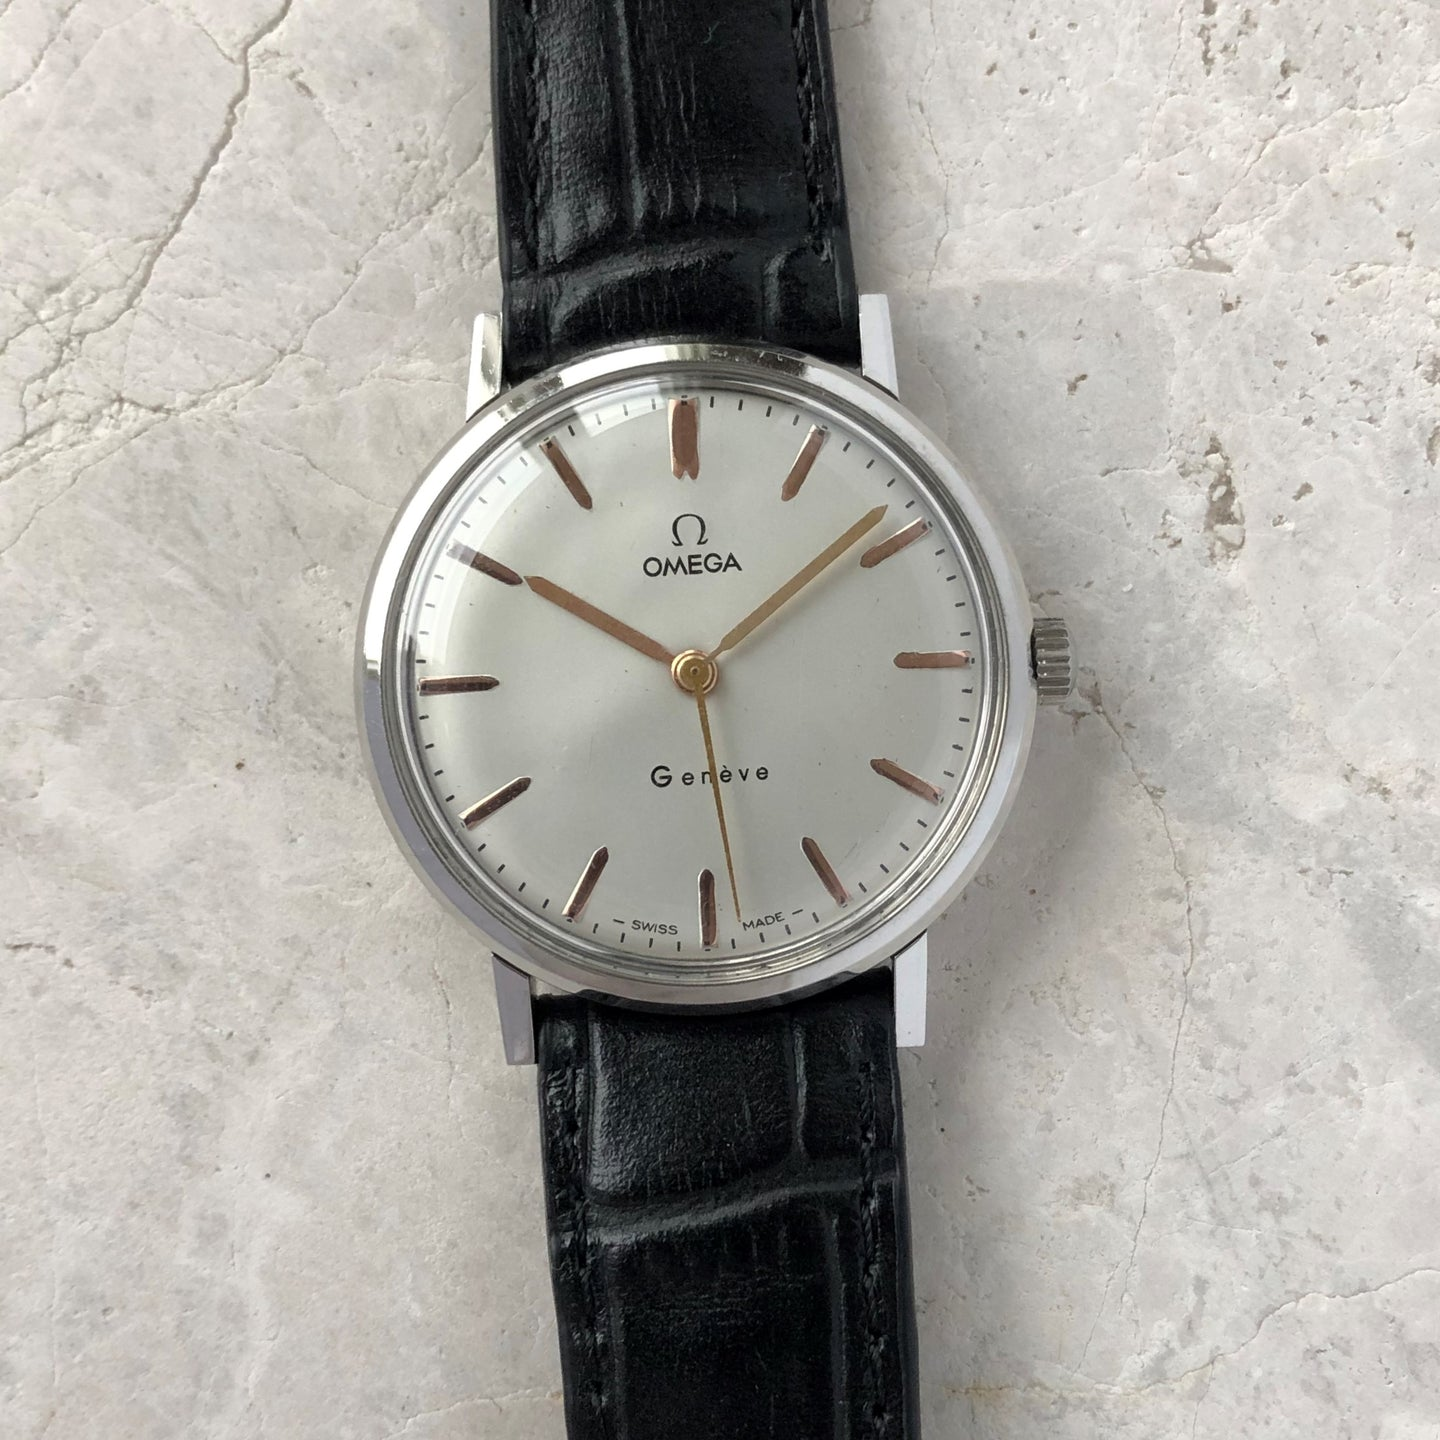 Vintage Omega Geneve watch